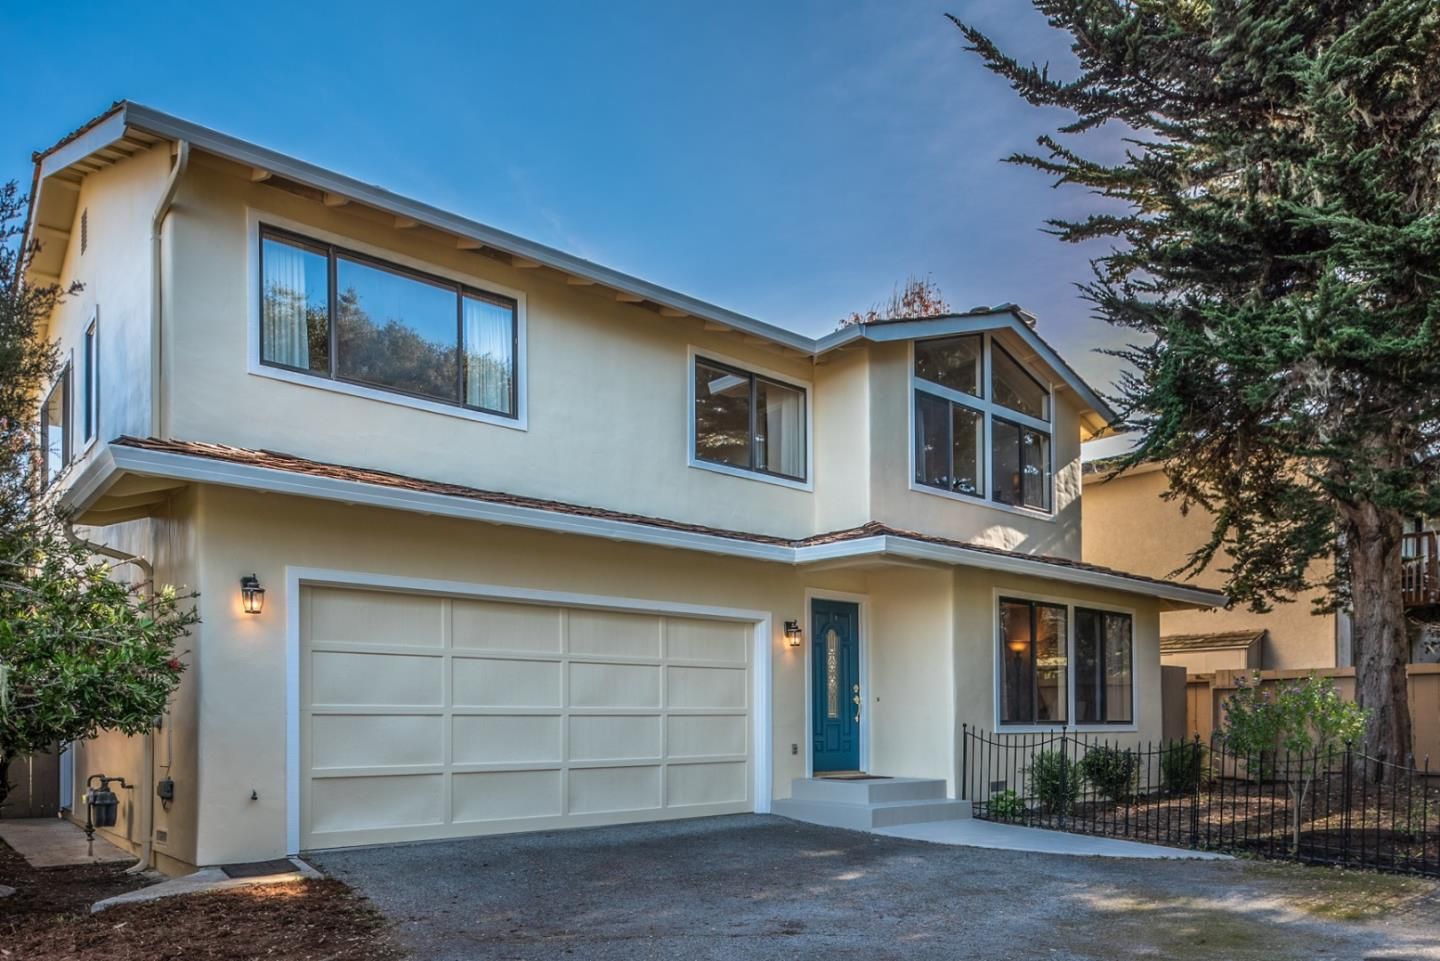 Detail Gallery Image 1 of 25 For 1339 David Ave, Pacific Grove, CA, 93950 - 3 Beds | 2/1 Baths